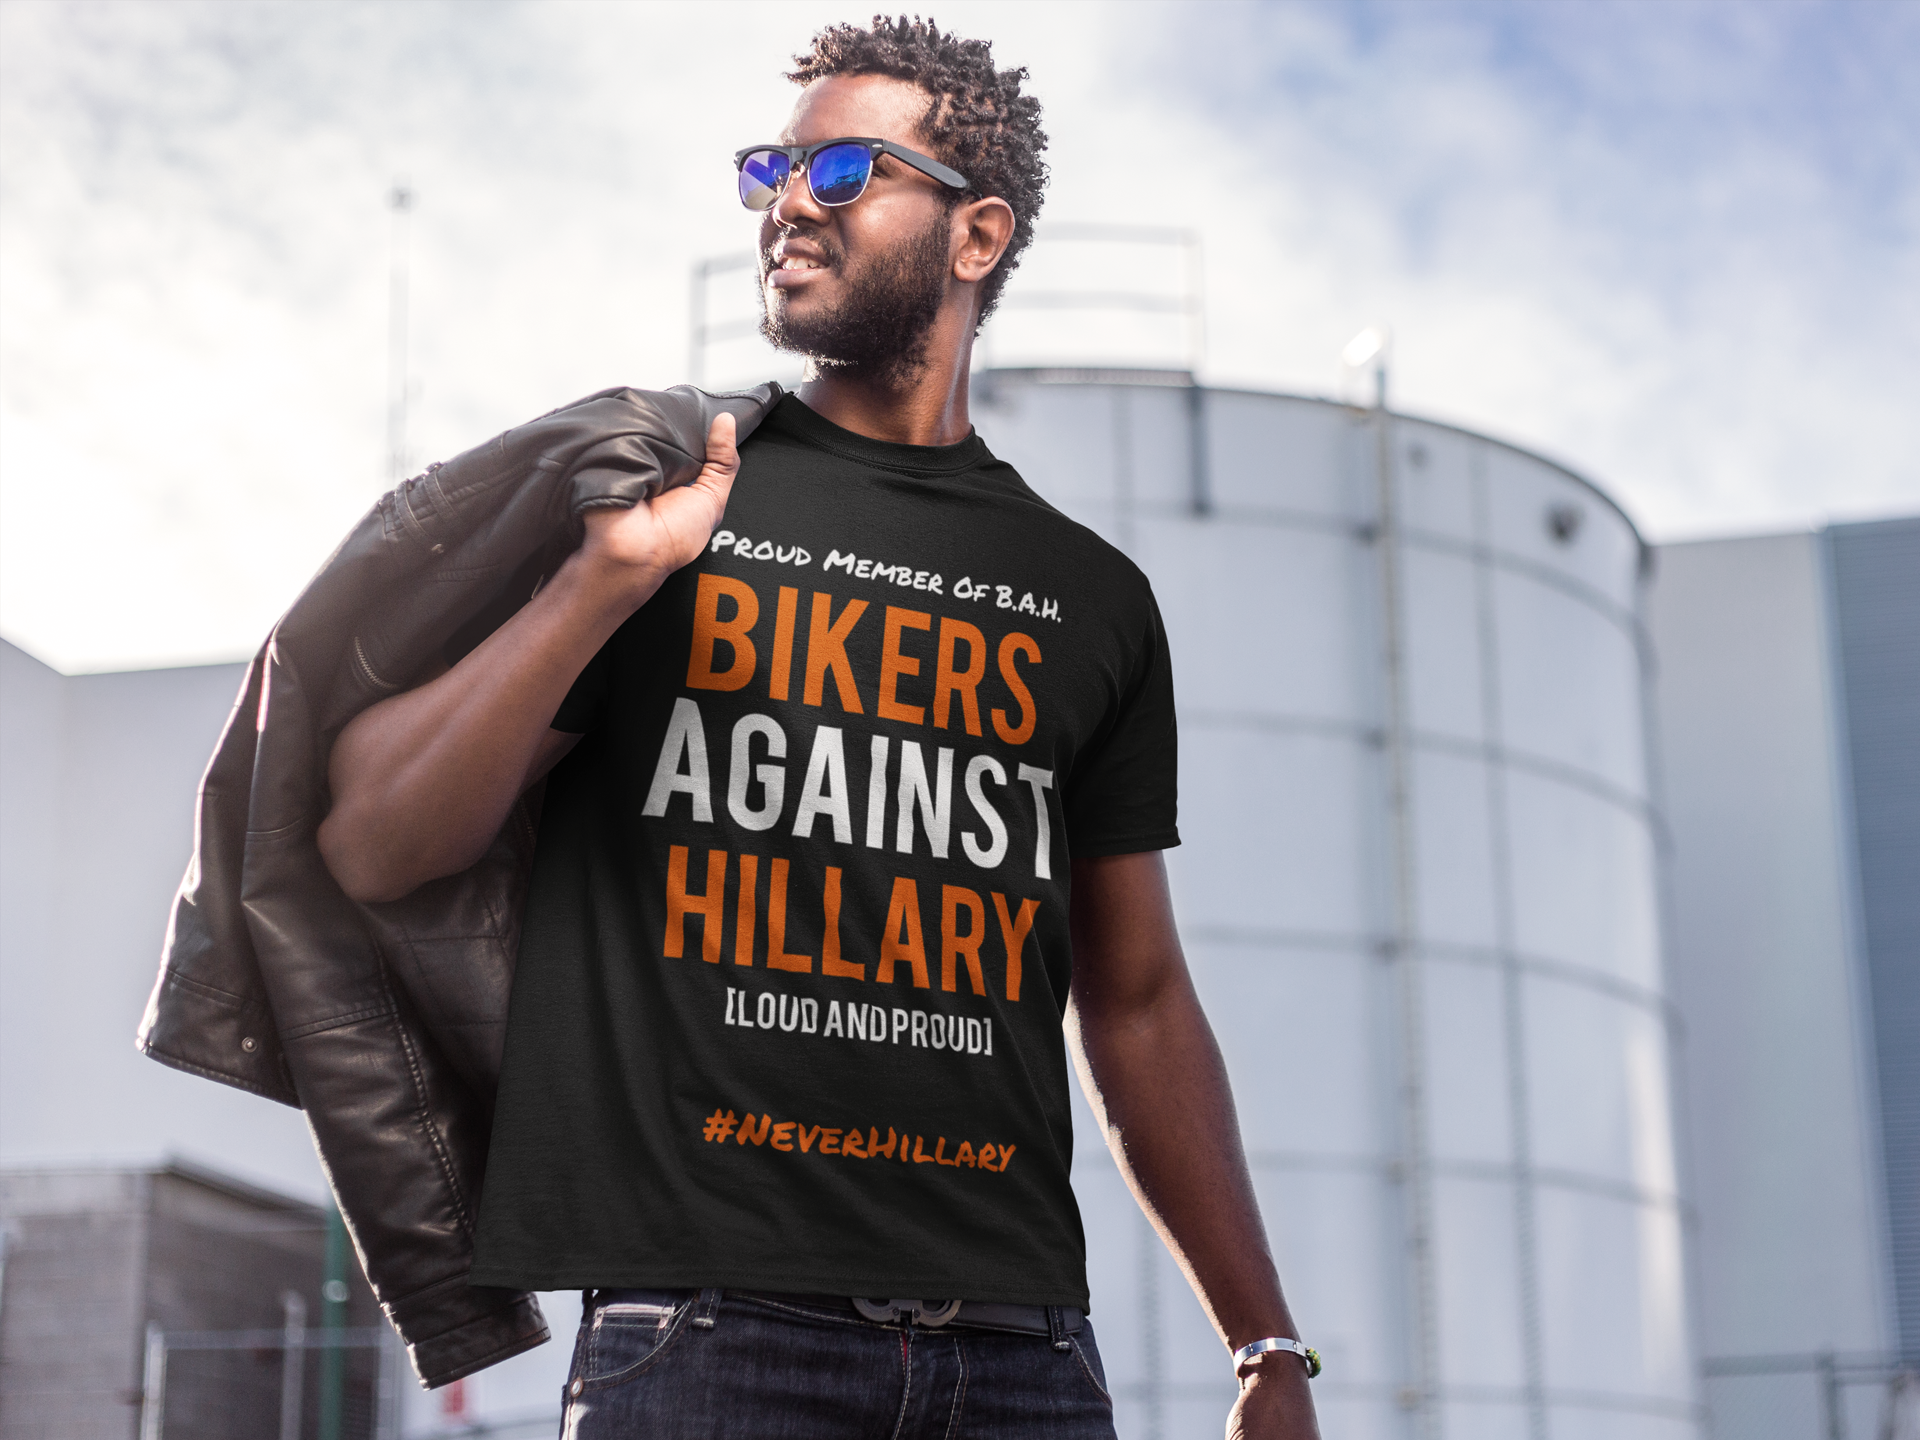 Bikers Against Hillary